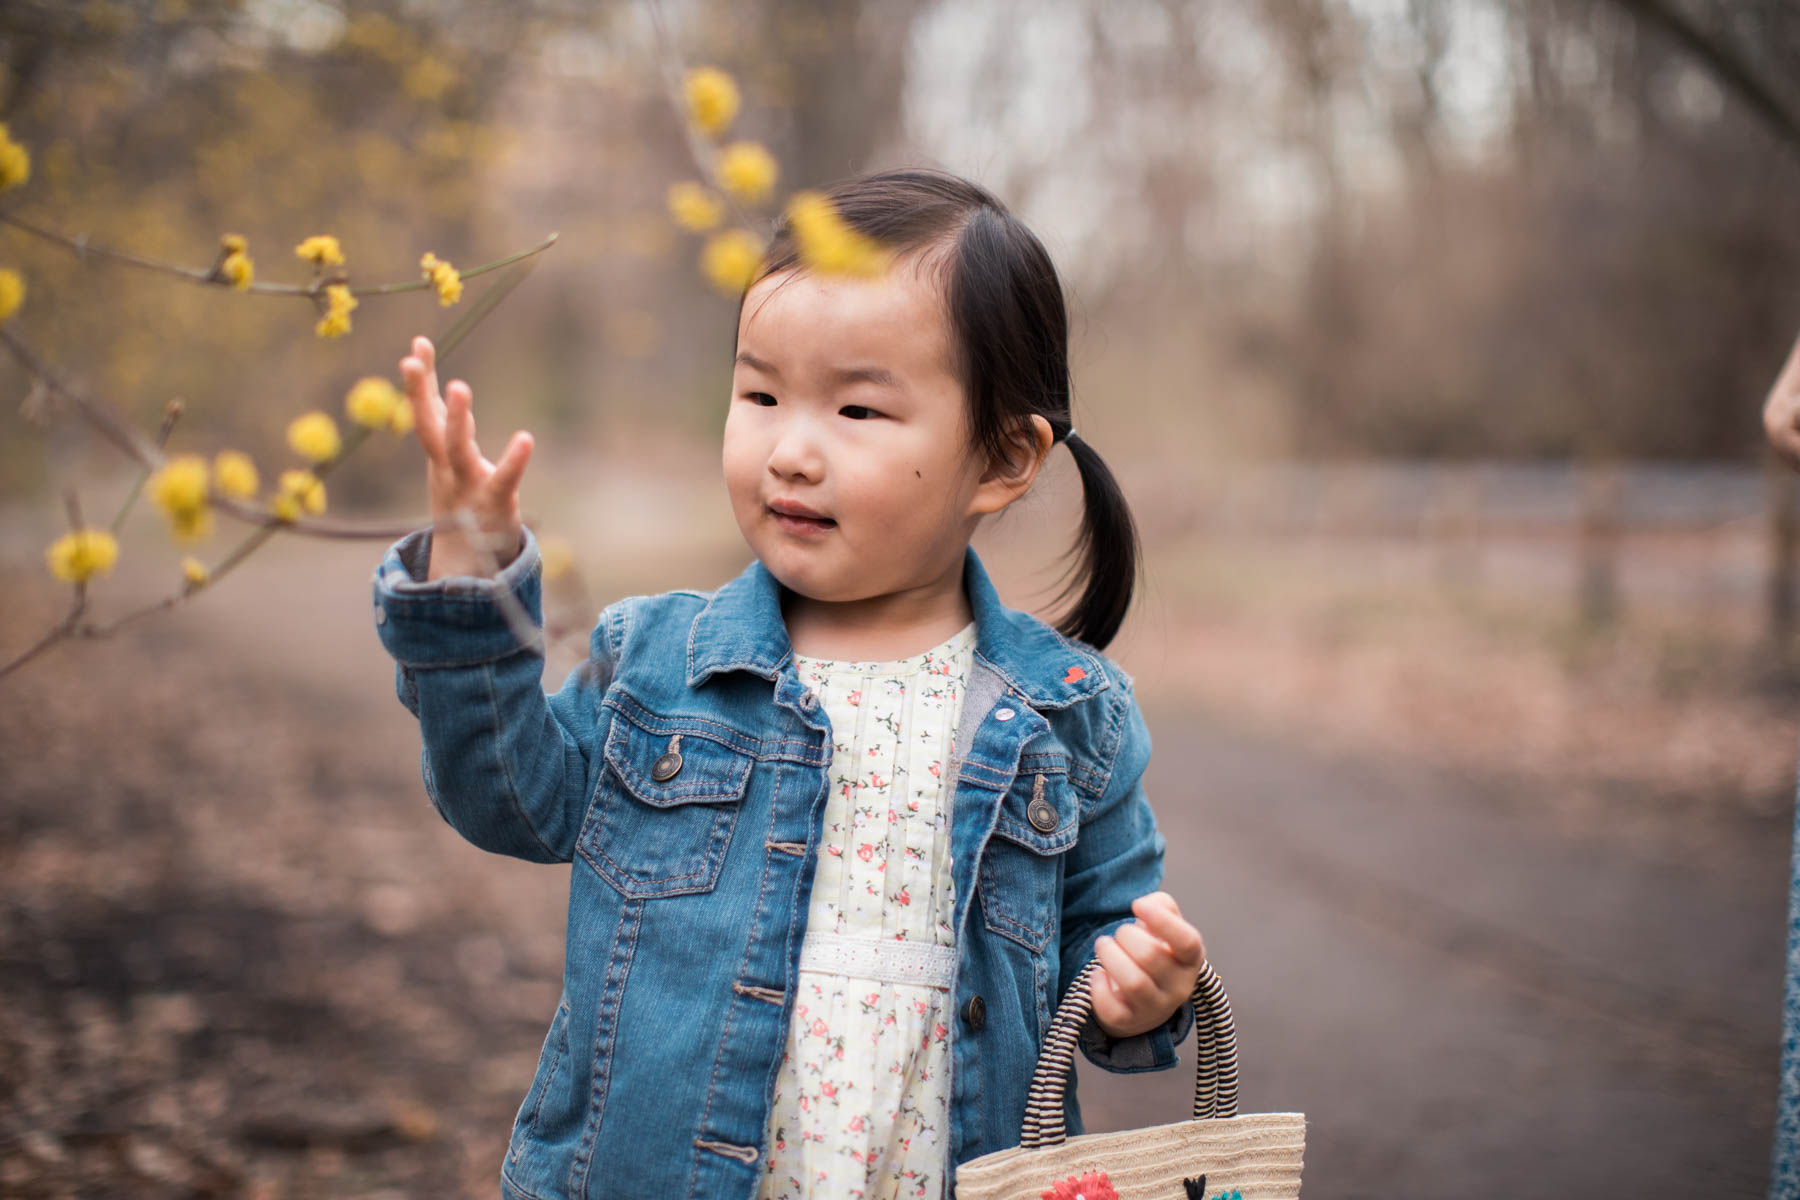 Exploring the new flowers in April at the Arnold Arboretum in Boston. Family photographer Joy LeDuc. Toddler portraits. Two-year-old photos. Lifestyle photography.